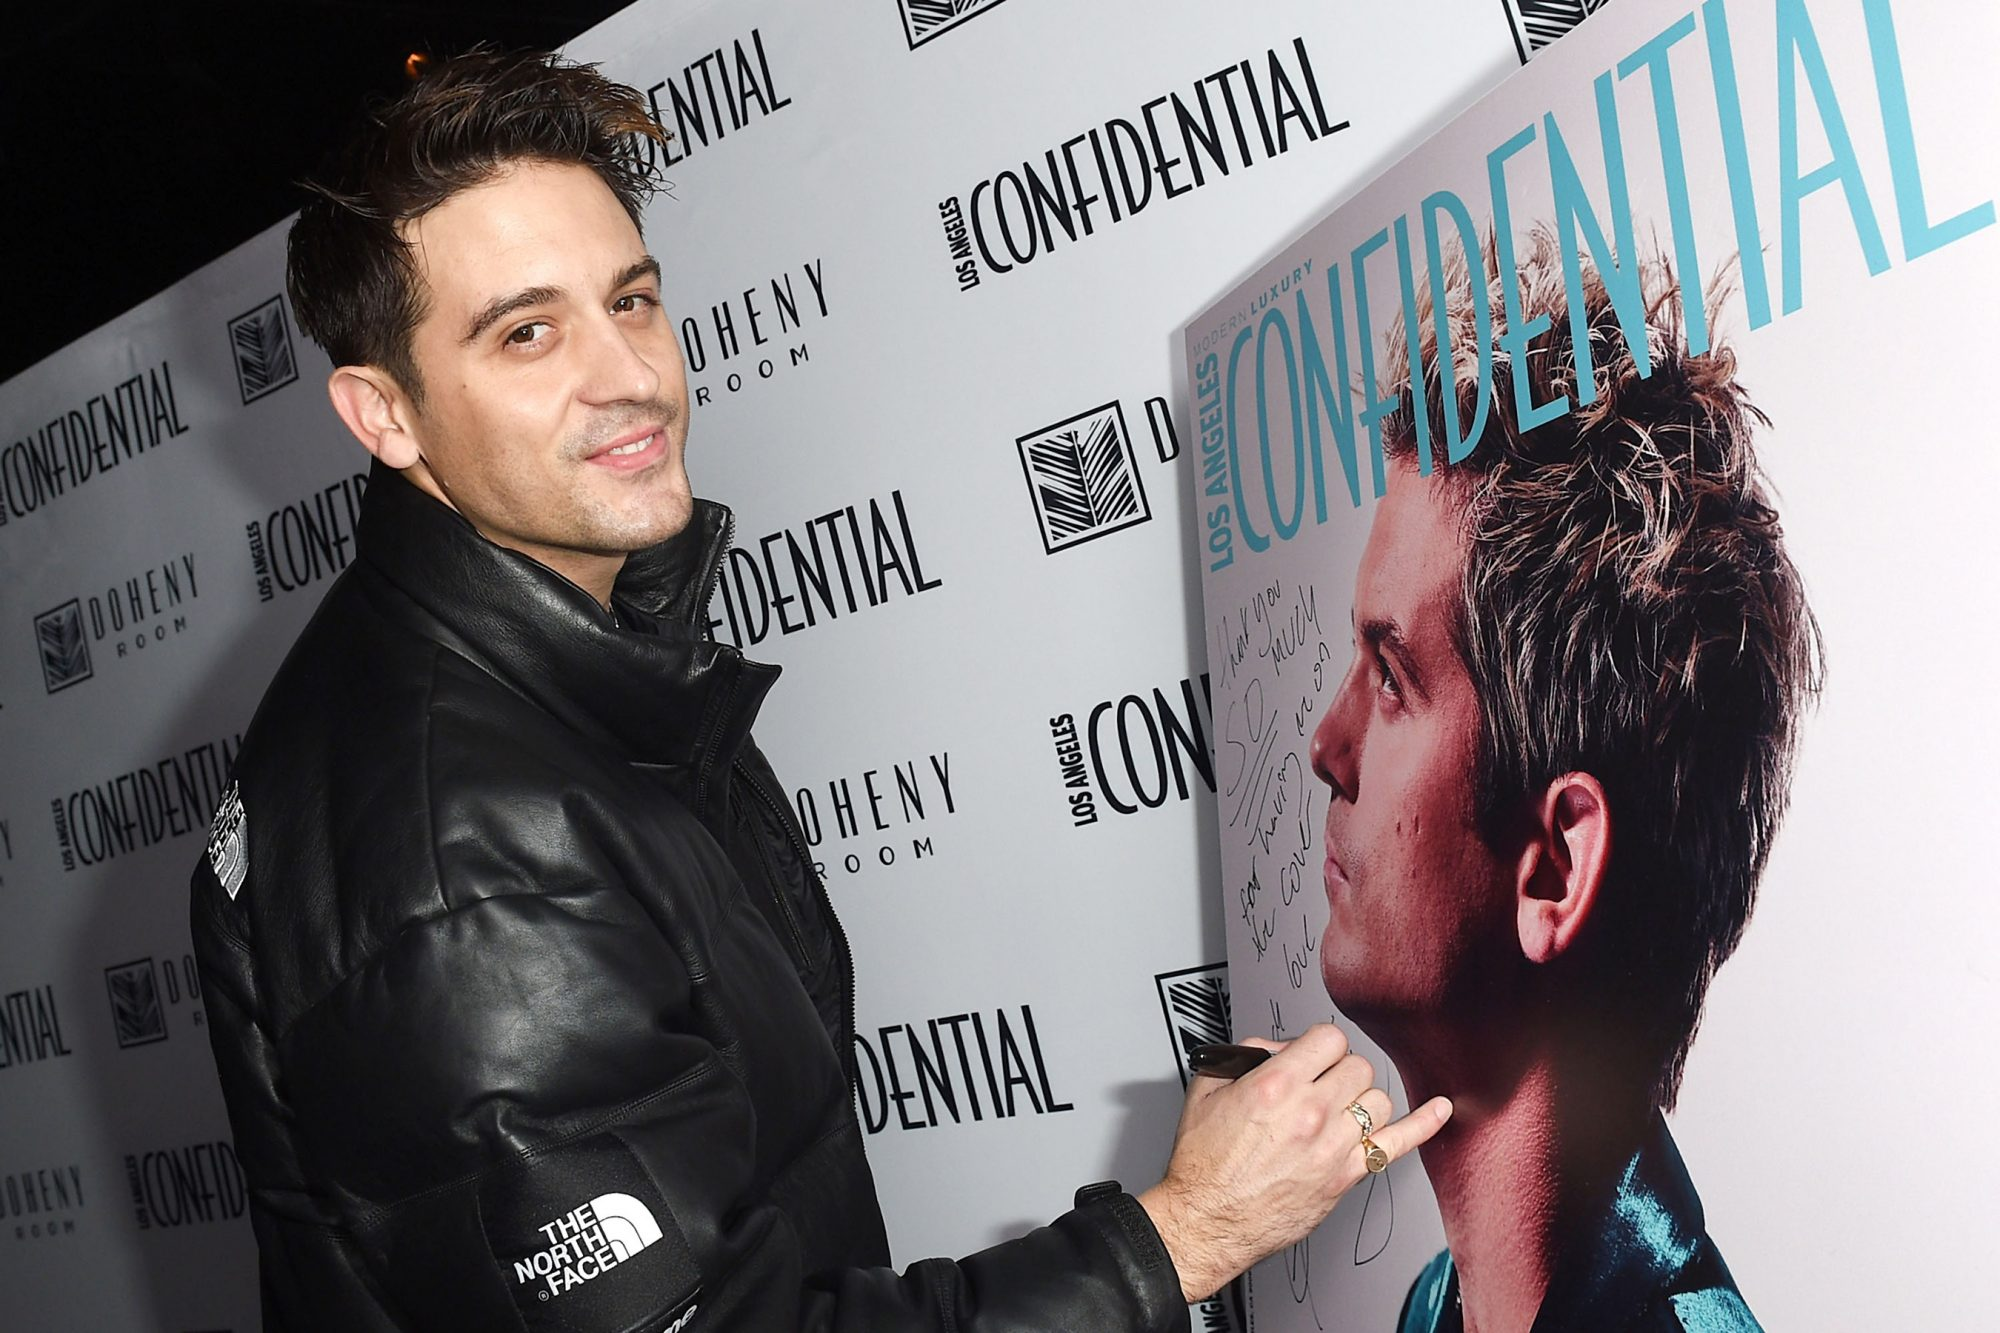 Los Angeles Confidential Grammys Celebration With G-Eazy